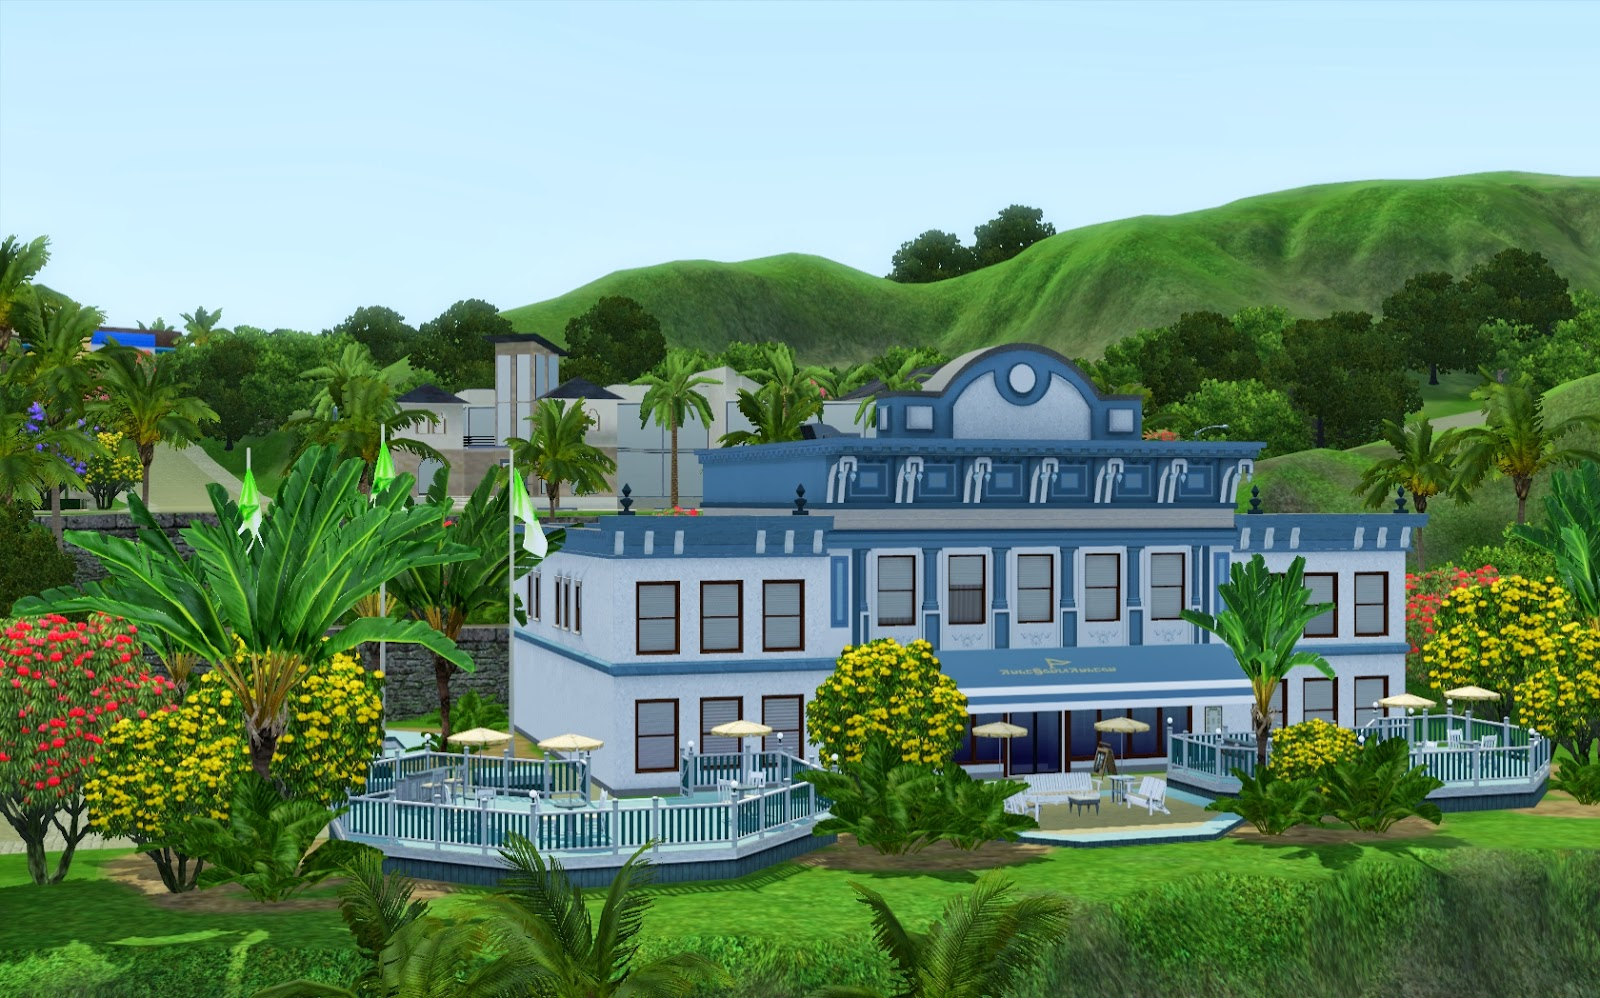 how to travel to isla paradiso in sims 3